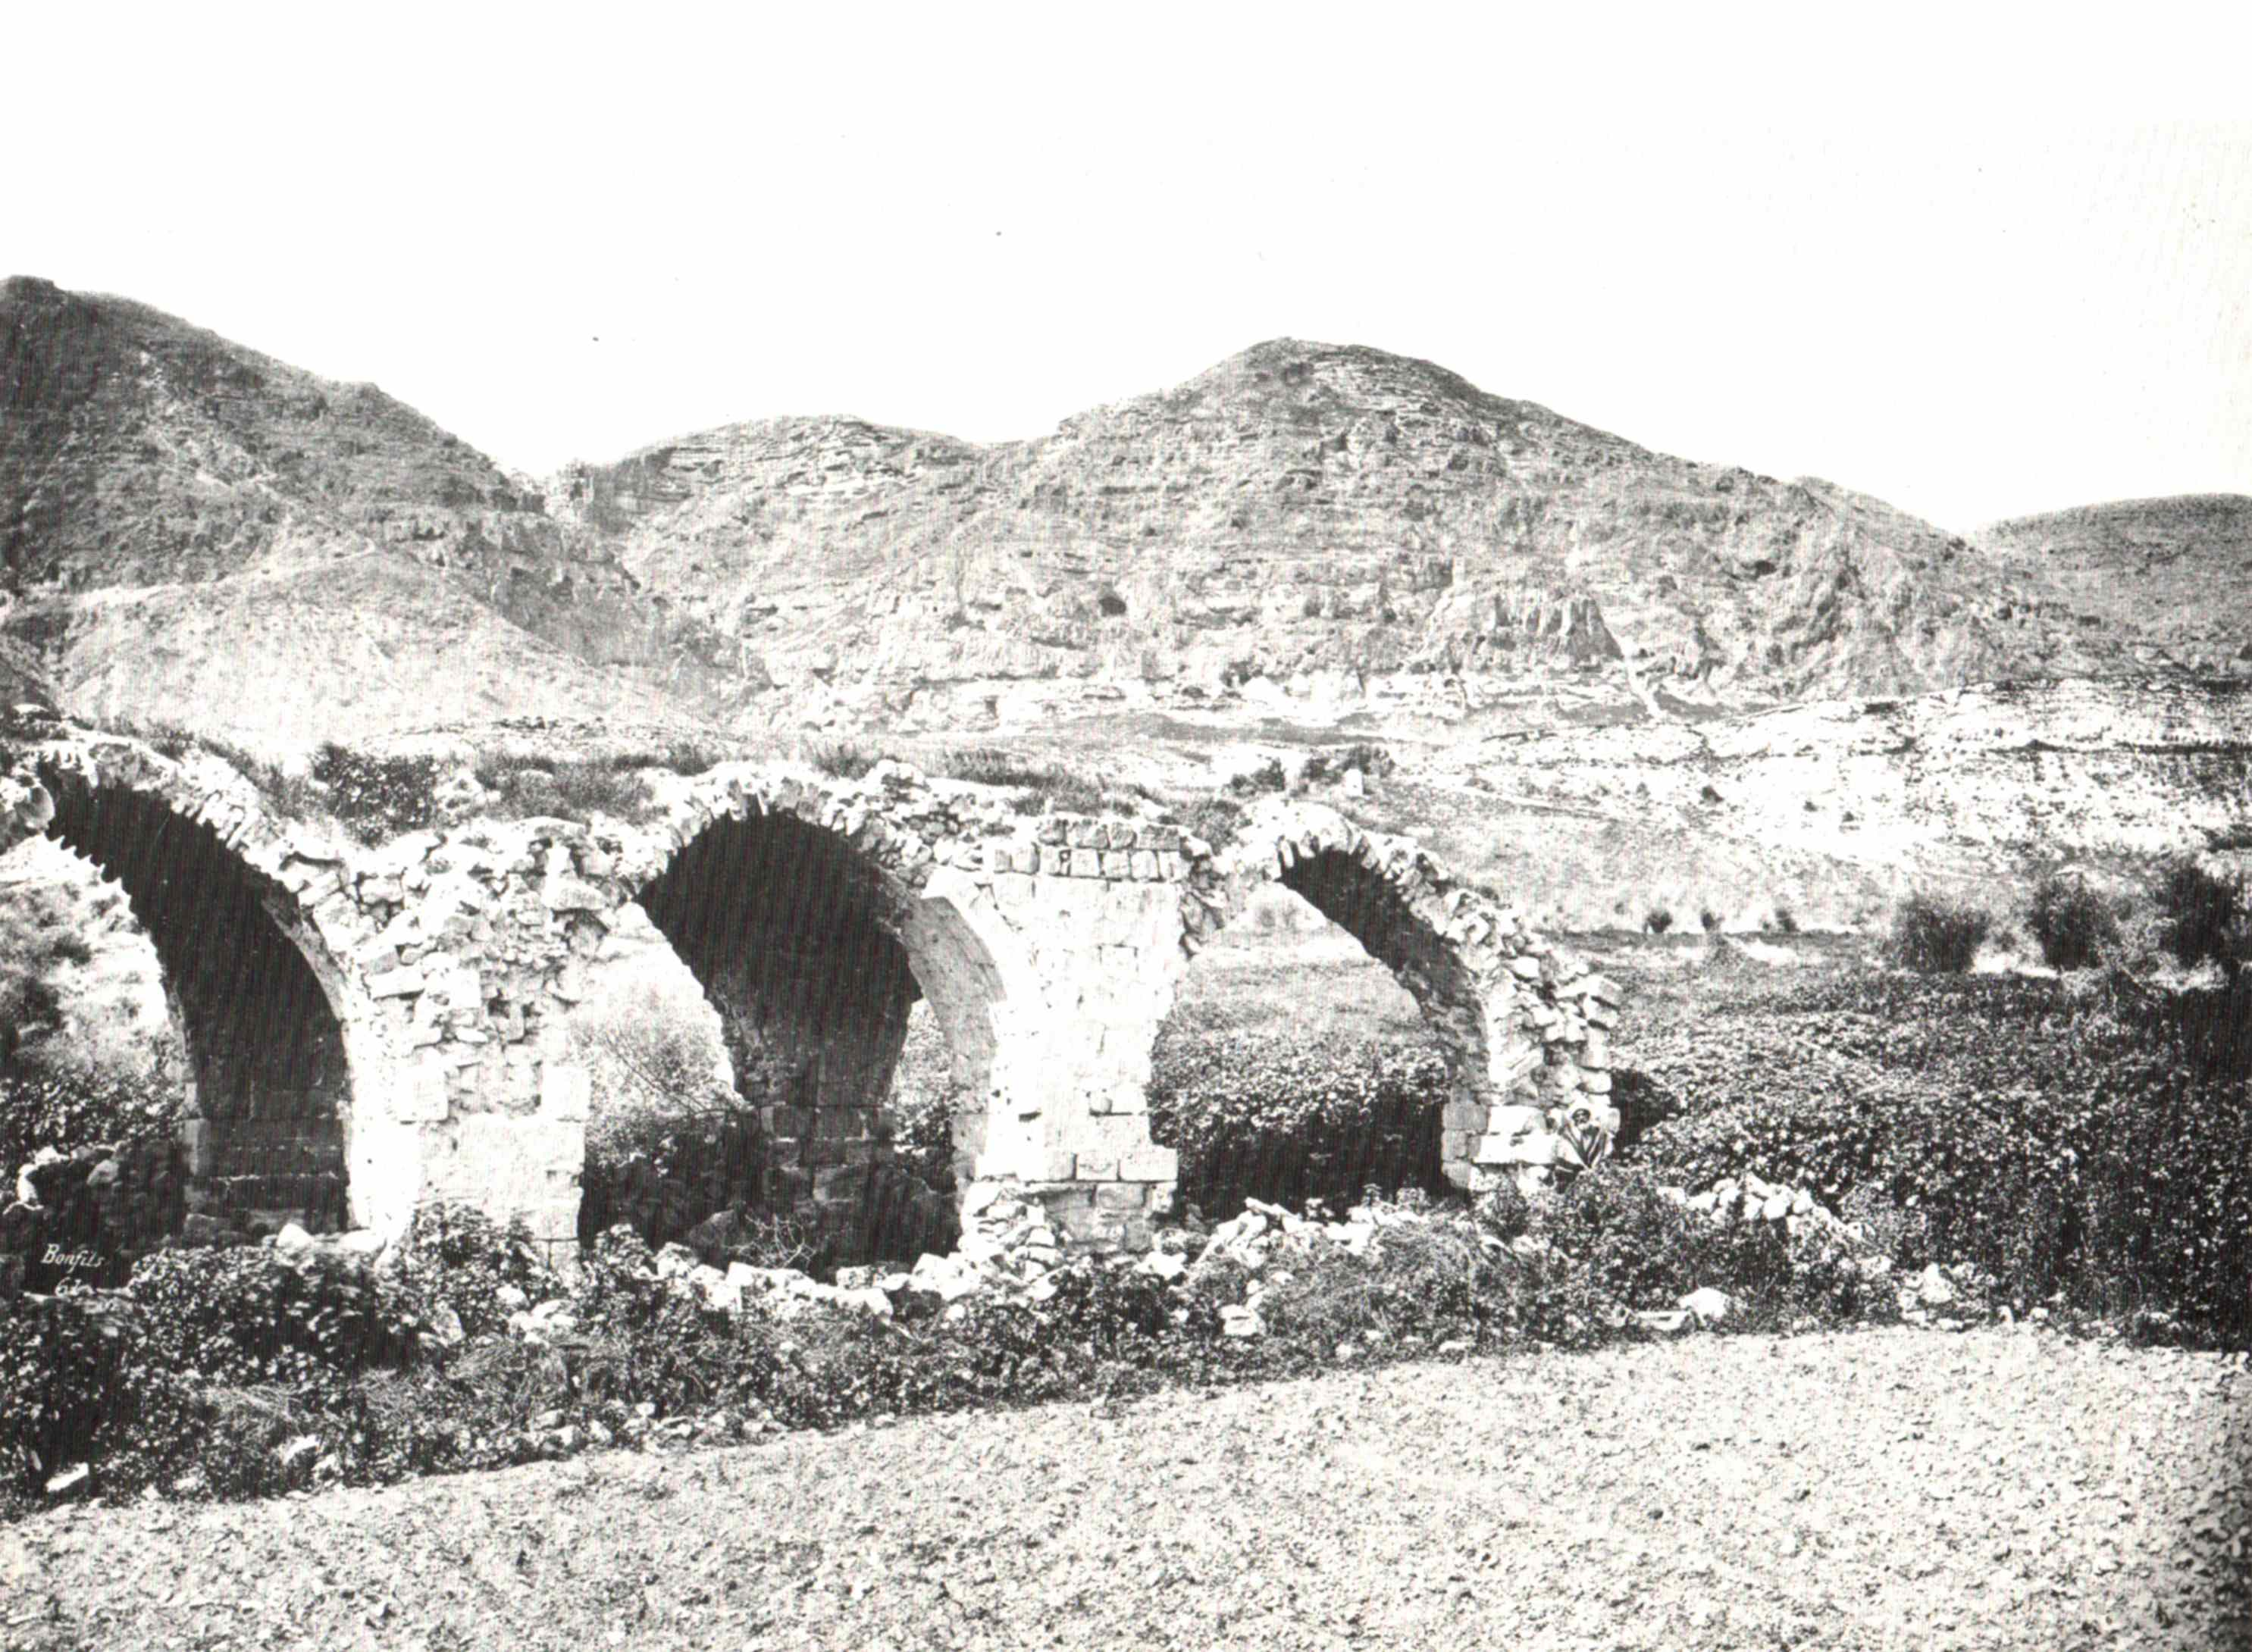 Jericho - أريحا : The Mount Of The Temptation, 1877